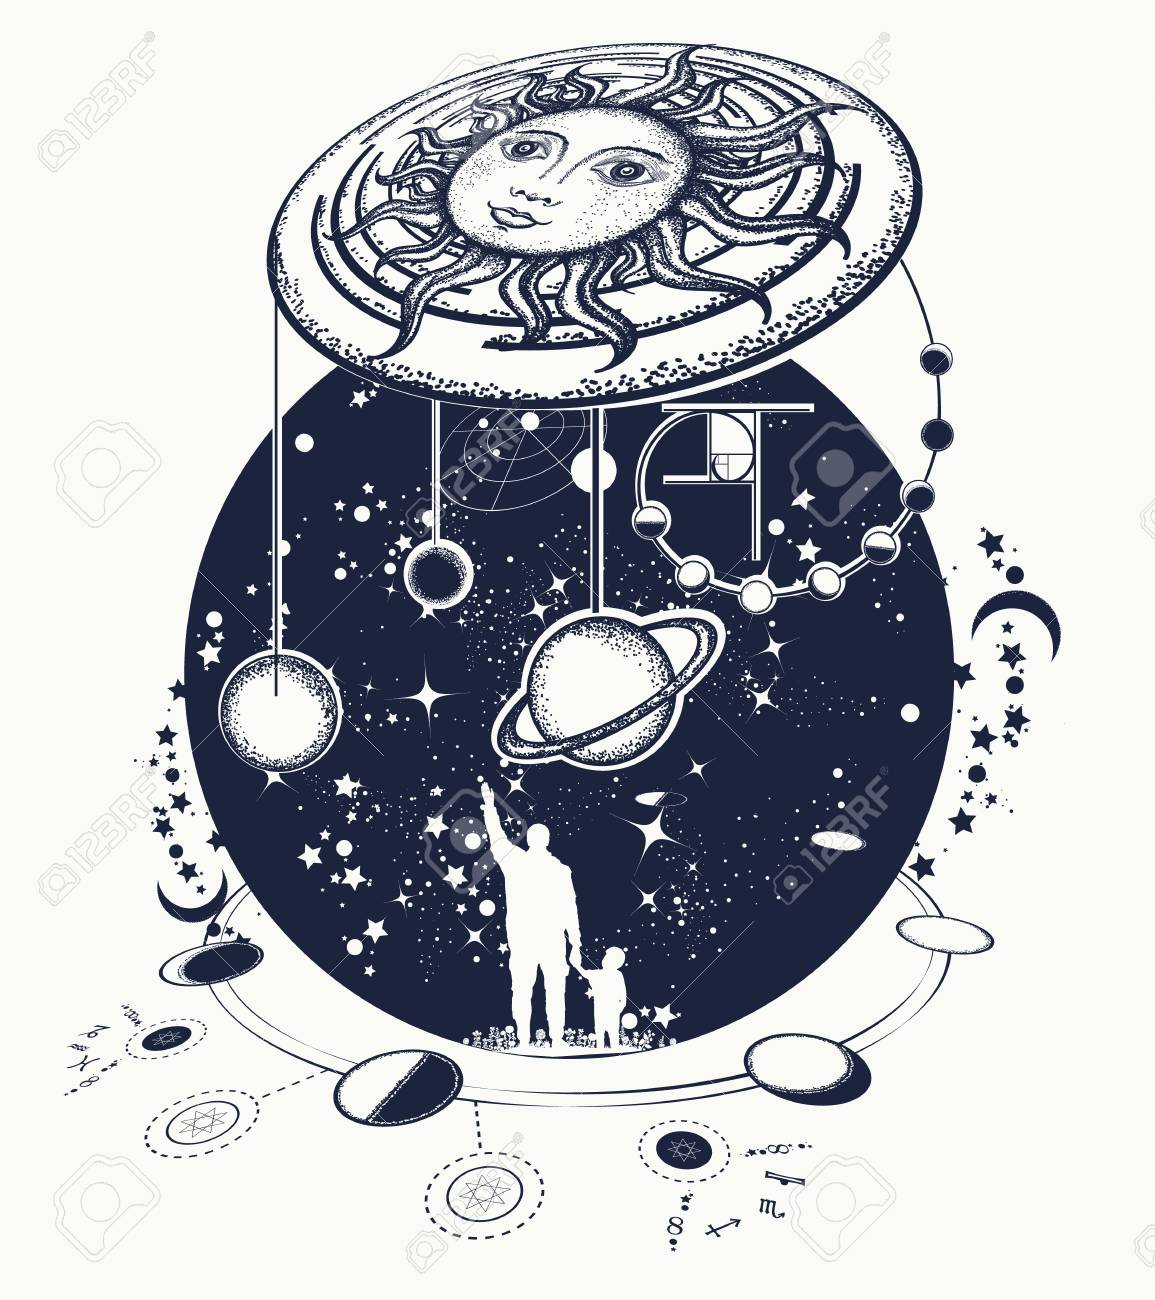 astrology religion and science